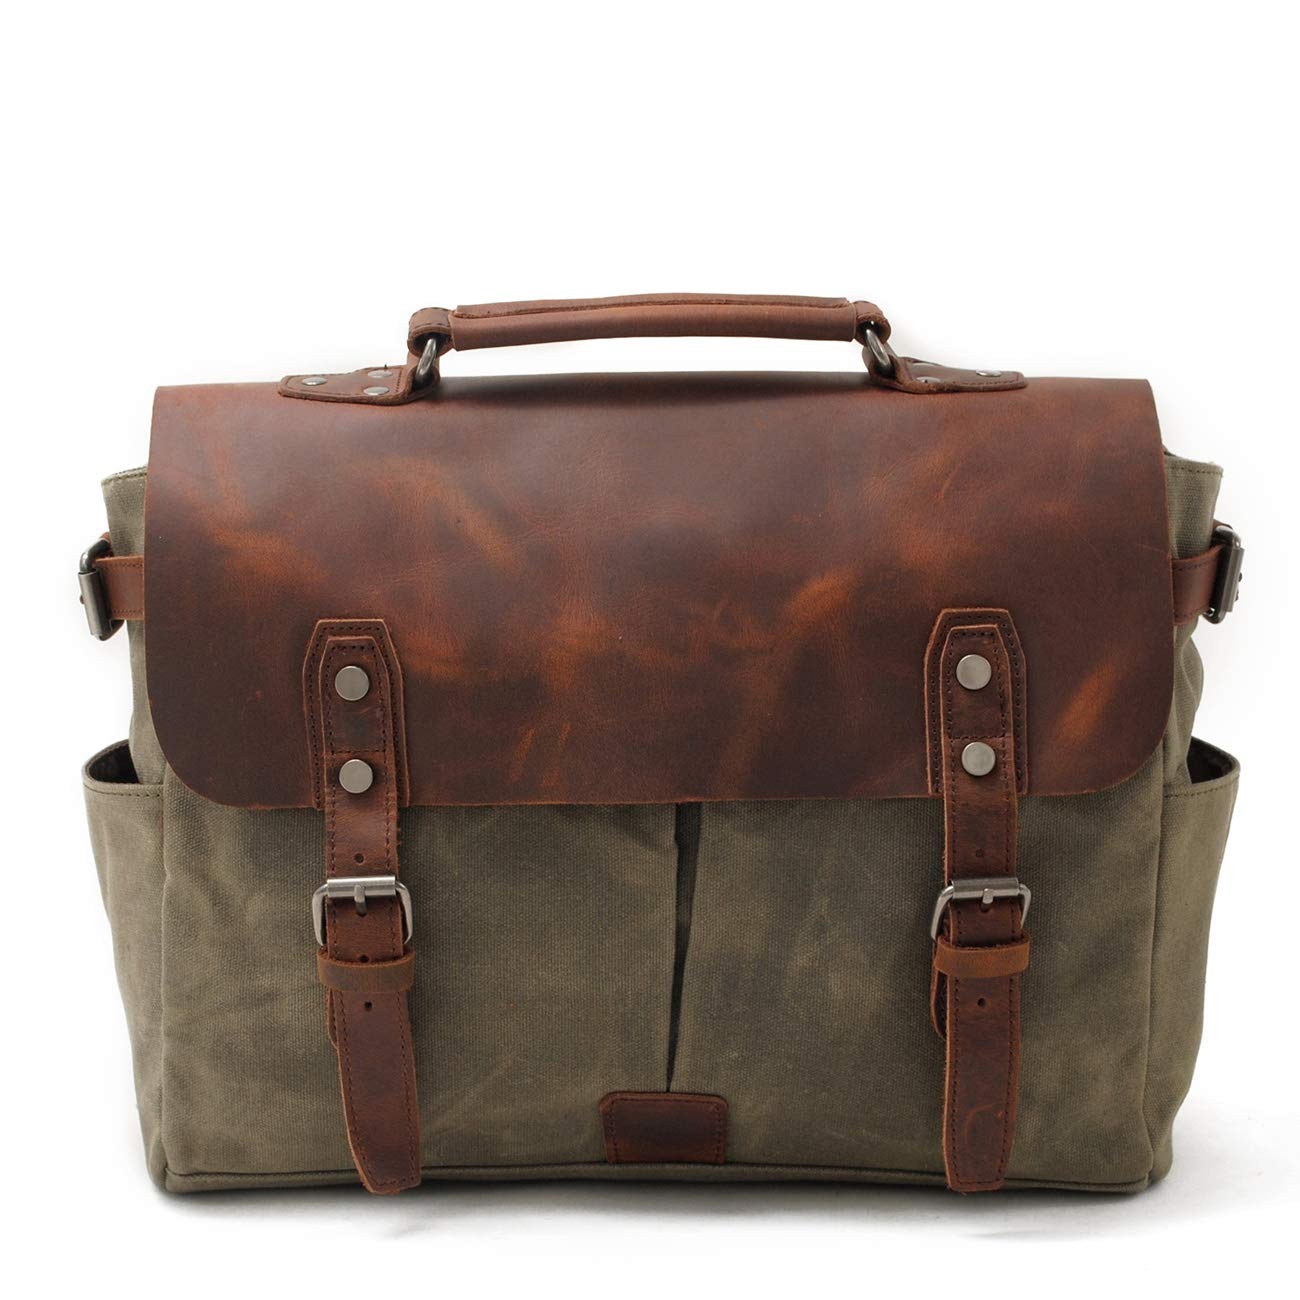 Mens Messenger Bag Handmade Cross Body Bag Genuine Leather Laptop Briefcase Waxed Canvas Shoulder Bag with Detachable Strap 16960 Army Green